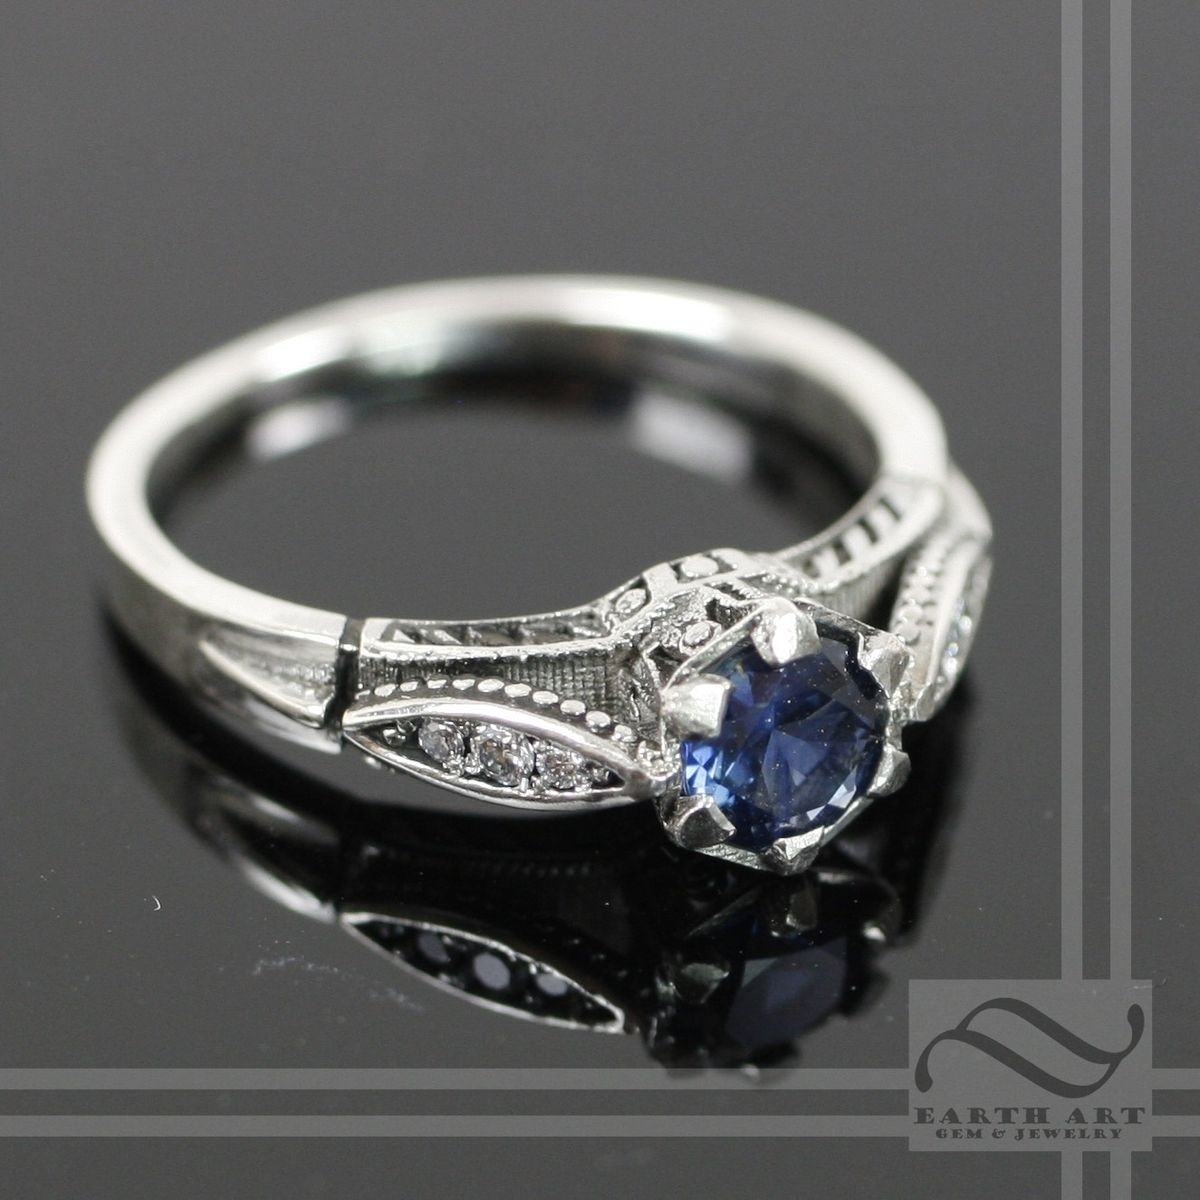 Buy A Hand Crafted Vintage Style Sapphire And Diamond Ring, Made To Within Most Popular Vintage Style Diamond And Sapphire Engagement Rings (Gallery 7 of 15)